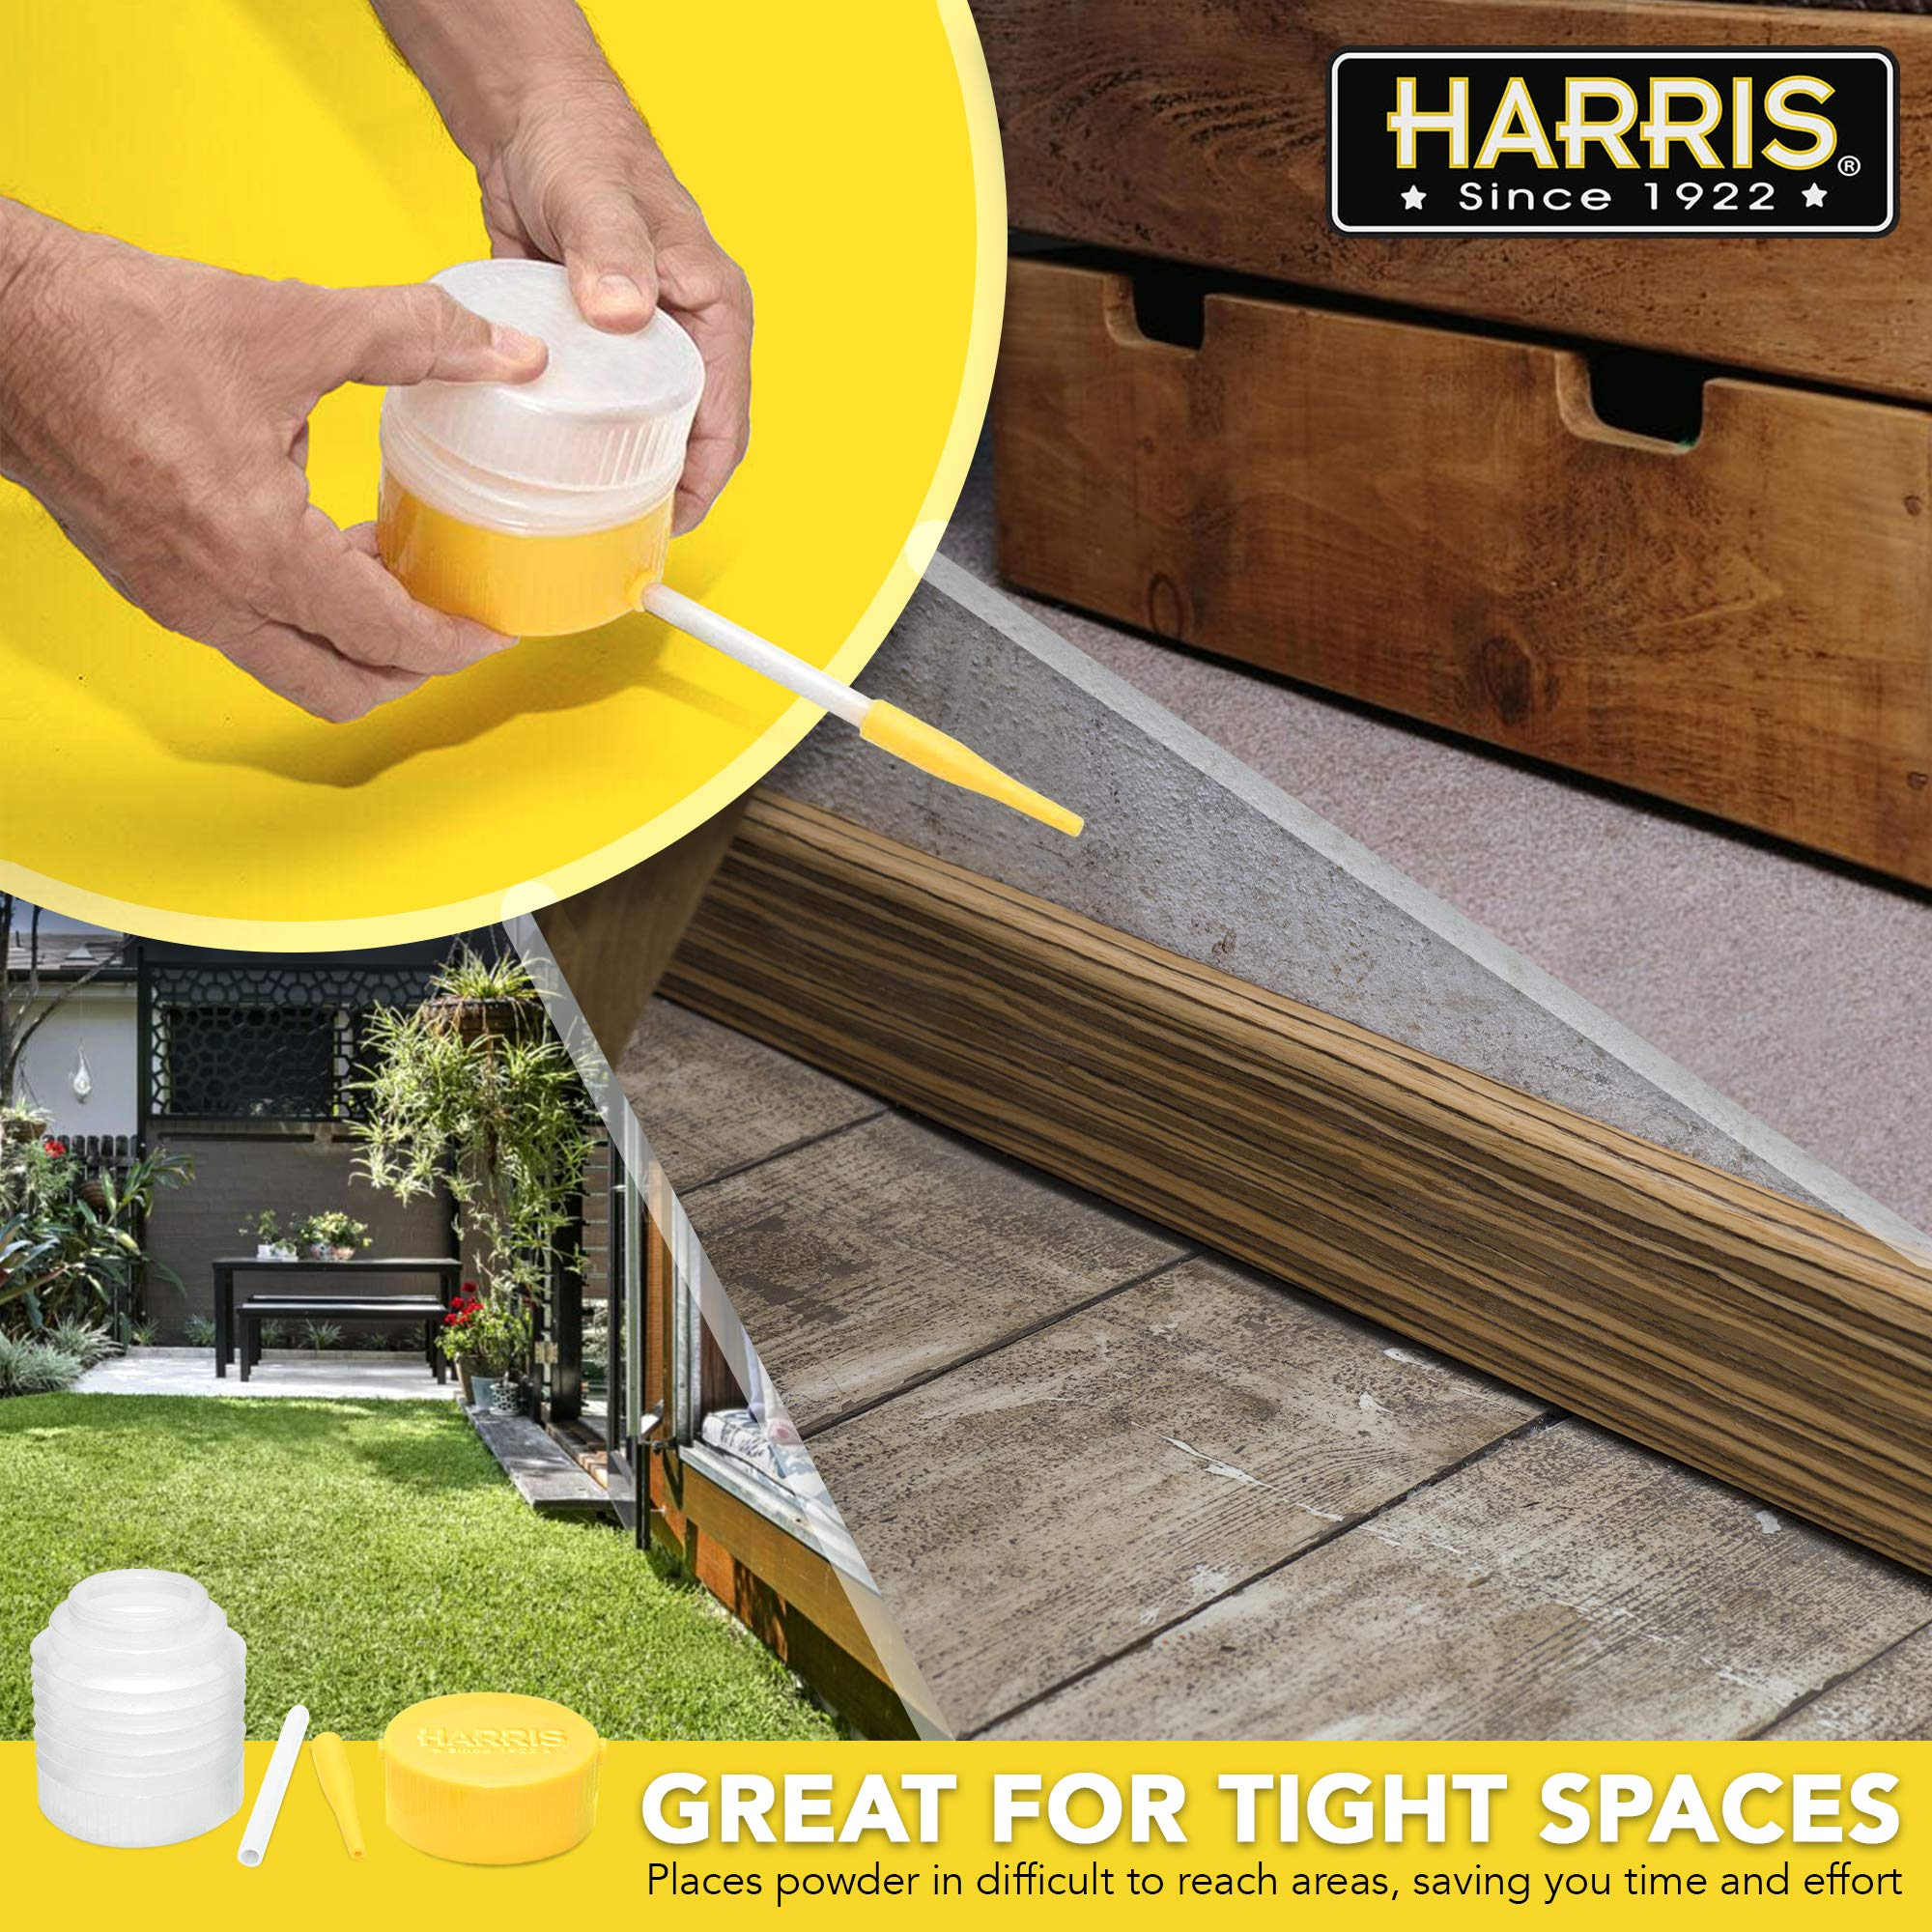 HARRIS Diatomaceous Earth Powder Duster with 6 Inch Extension Nozzle